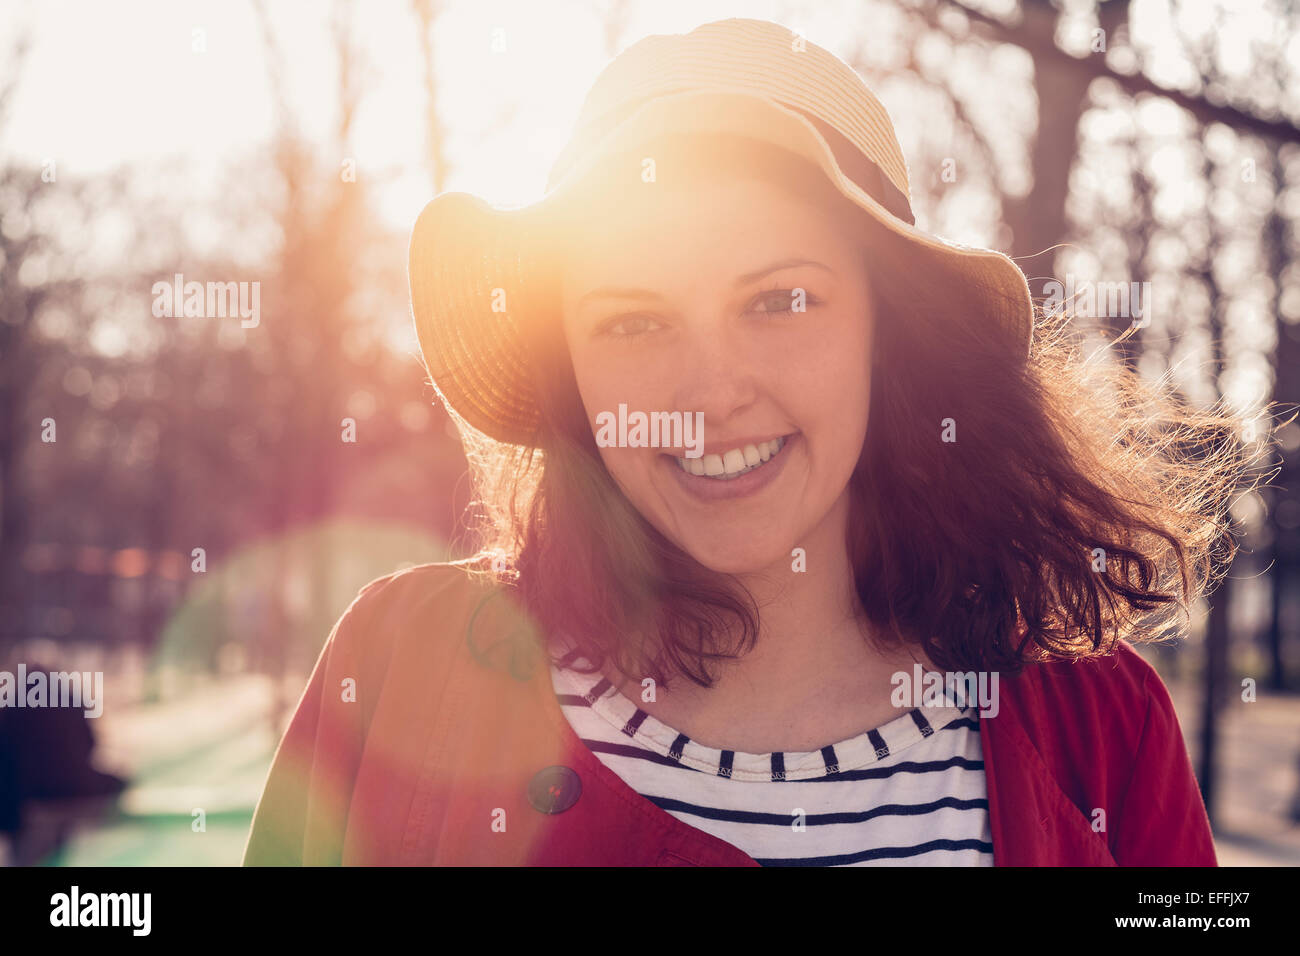 Portrait of a young woman in Paris - Stock Image